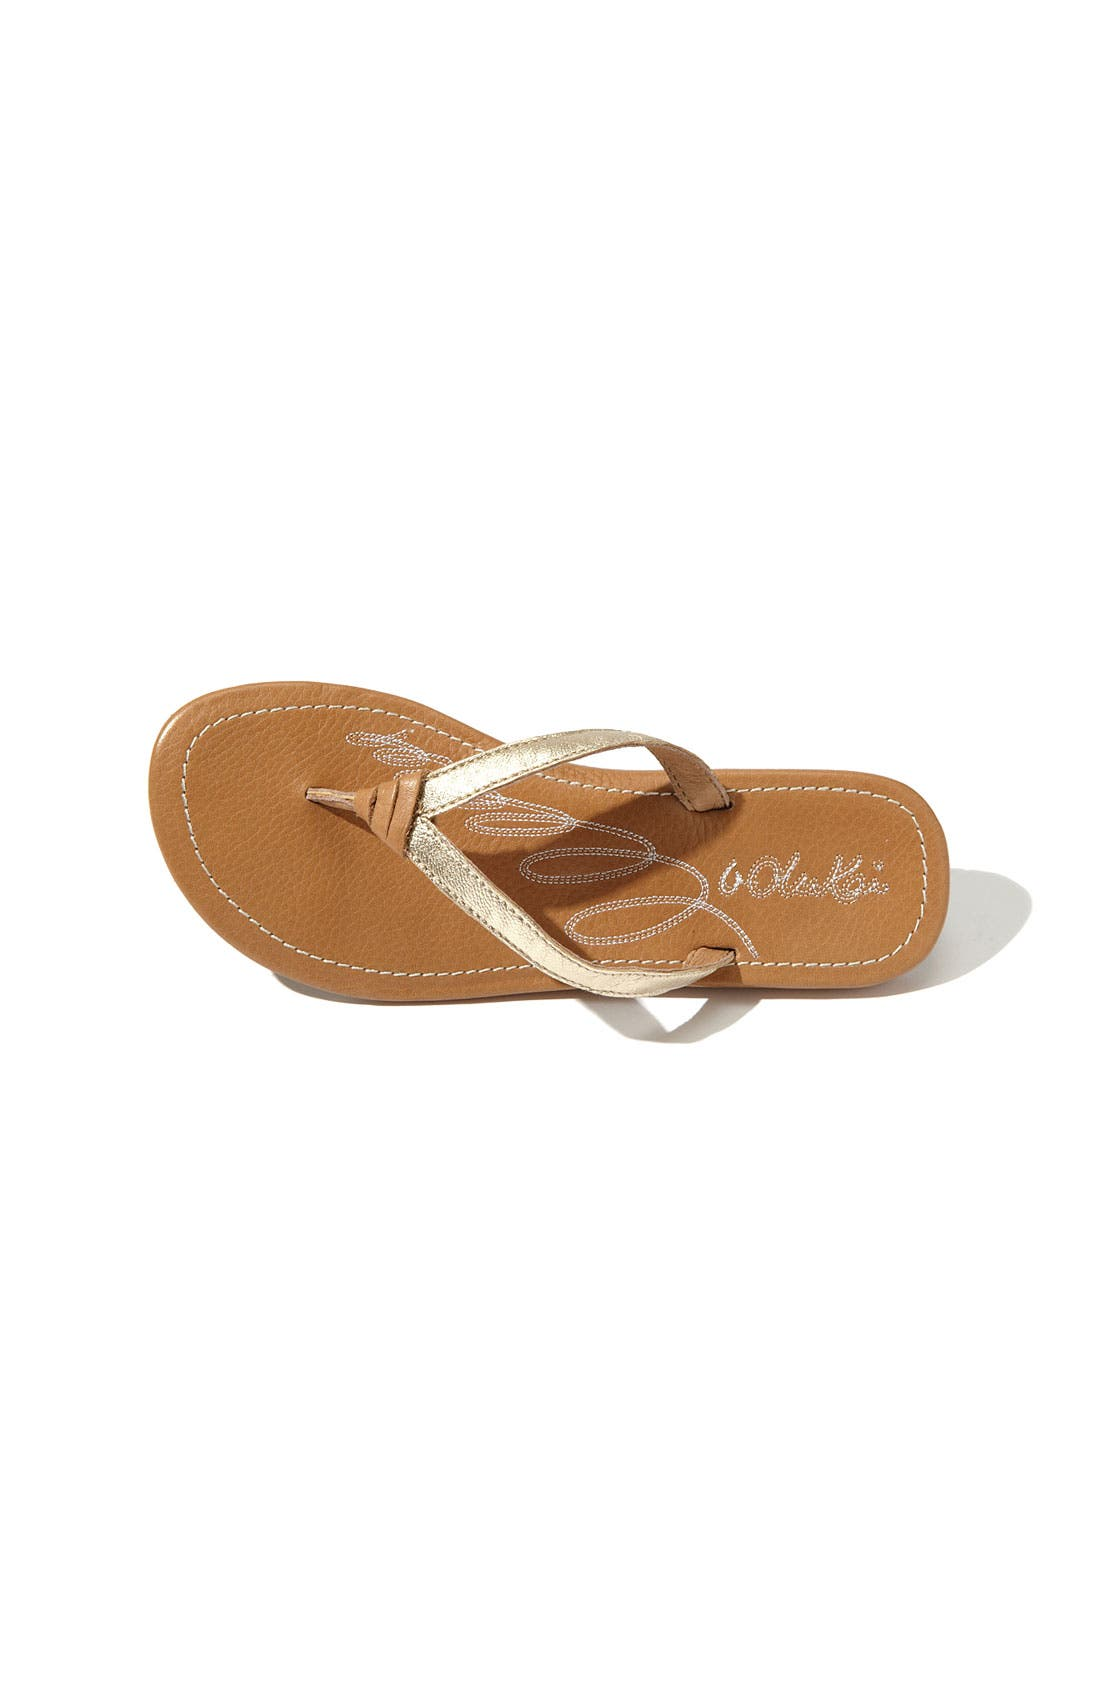 Alternate Image 3  - OluKai 'Ulala' Flip Flop (Toddler, Little Kid & Big Kid)